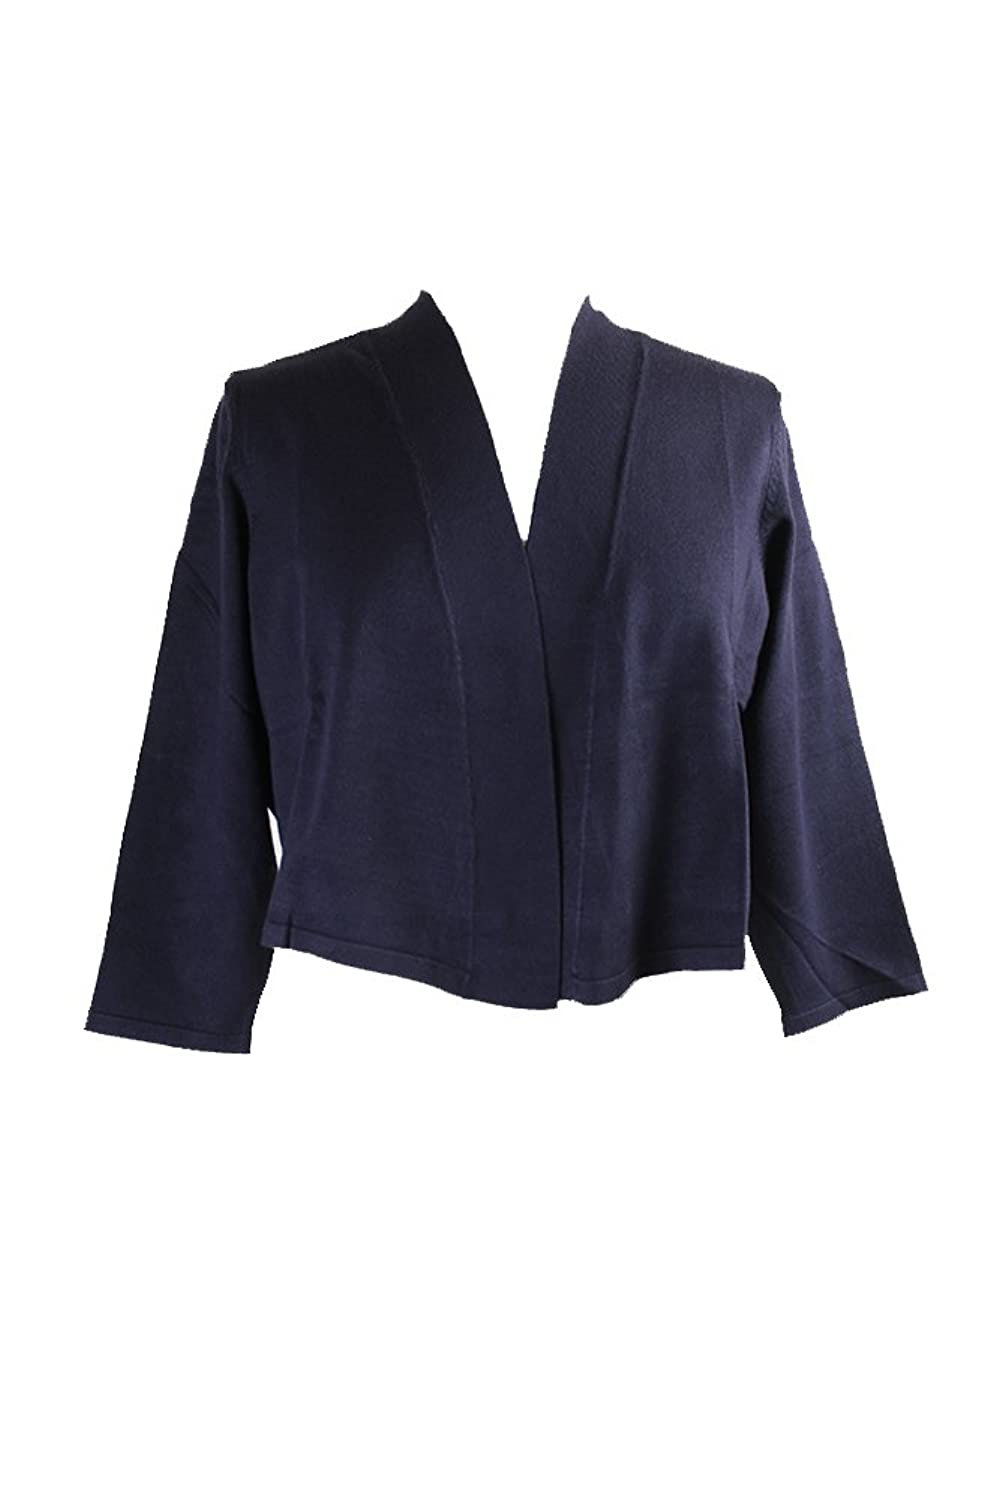 Charter Club Plus Size Navy /-Sleeve Cropped Cardigan X